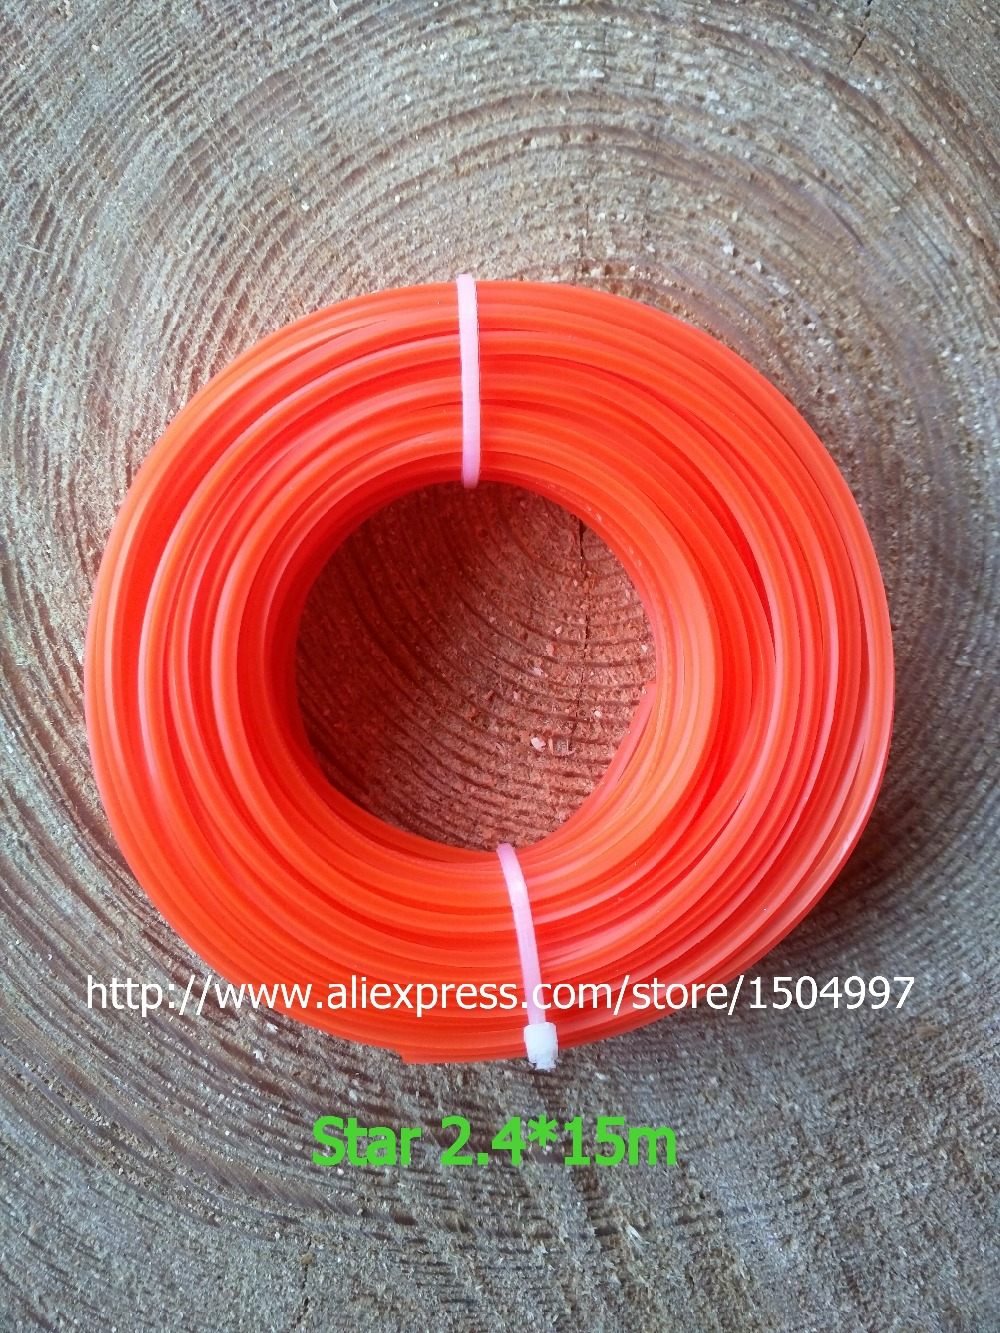 diameter 2.4mm x 15 metres Spool Strimmer Cord Line Wire String Nylon Star  Petrol TRIMMER HEAVY DUTY<br><br>Aliexpress